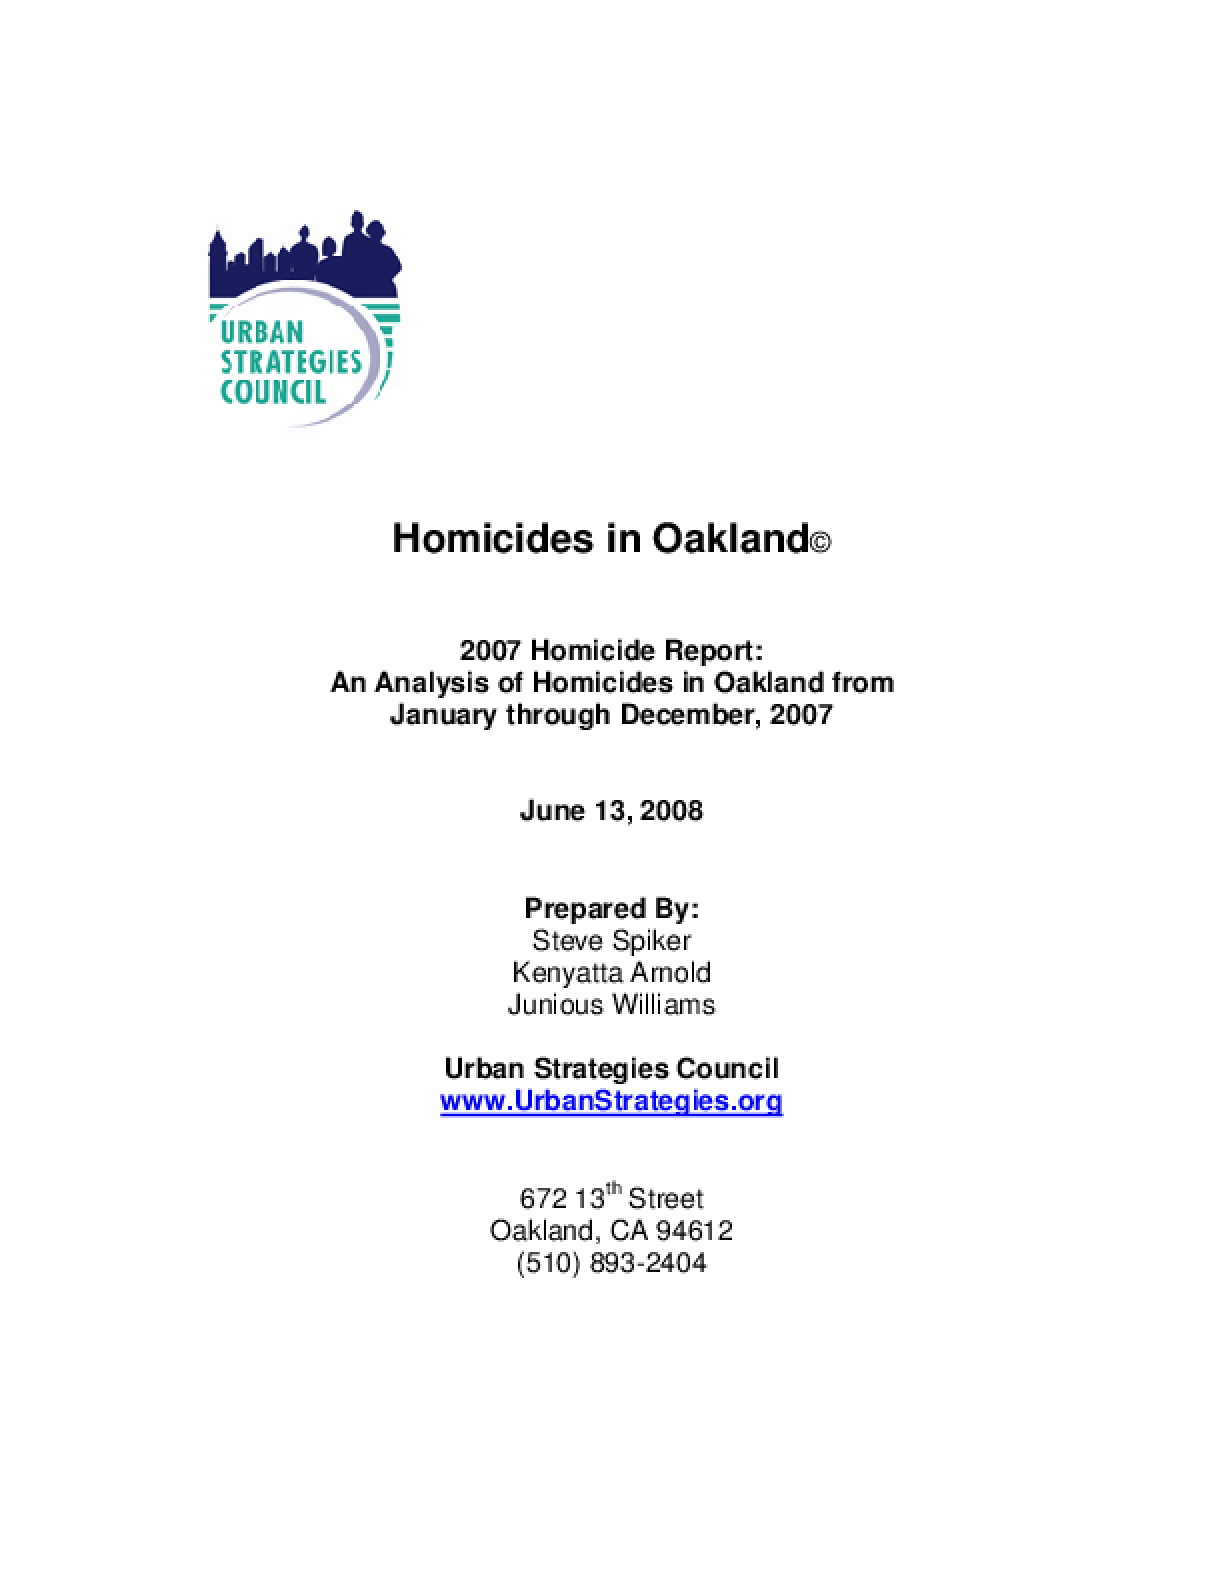 2007 Homicide Report: An Analysis of Homicides in Oakland from January through December, 2007